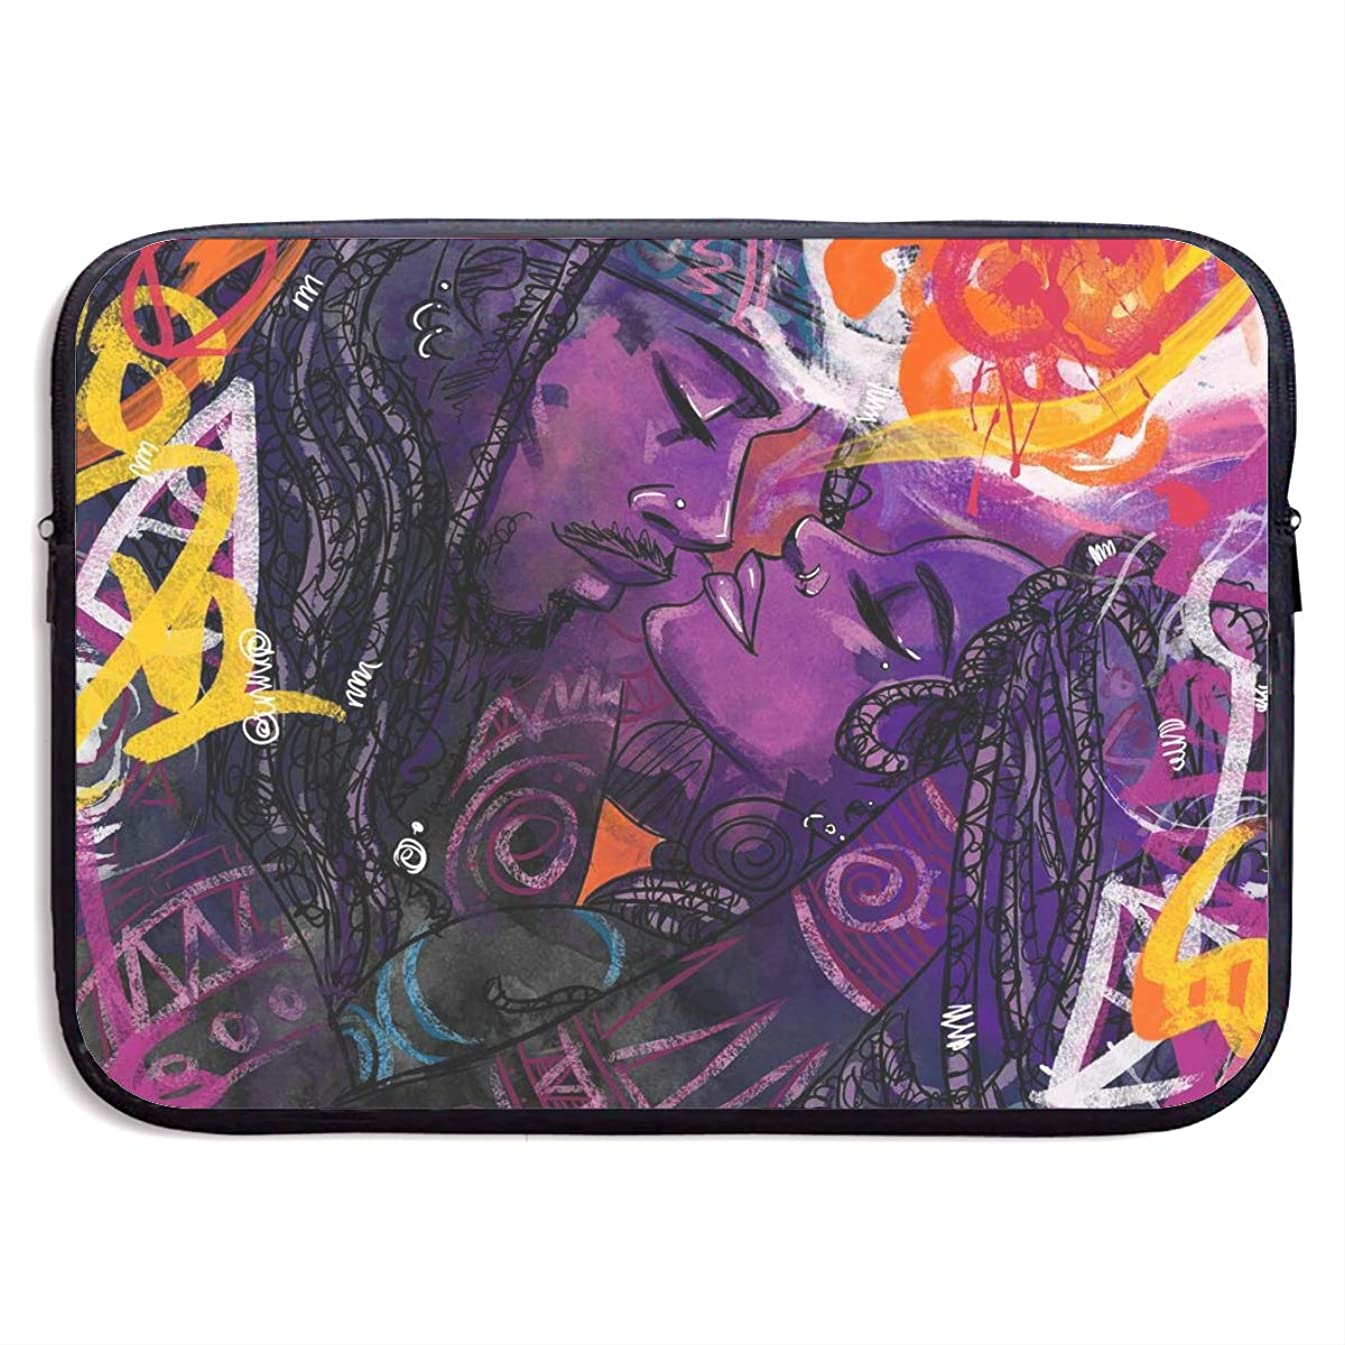 Classic Black Water Repellent Neoprene Laptop Sleeve Bag Cover Case Compatible 13 15 Inch, Computer Netbook Notebook Skin - African American Lovers Abstract Graffiti Print (4)